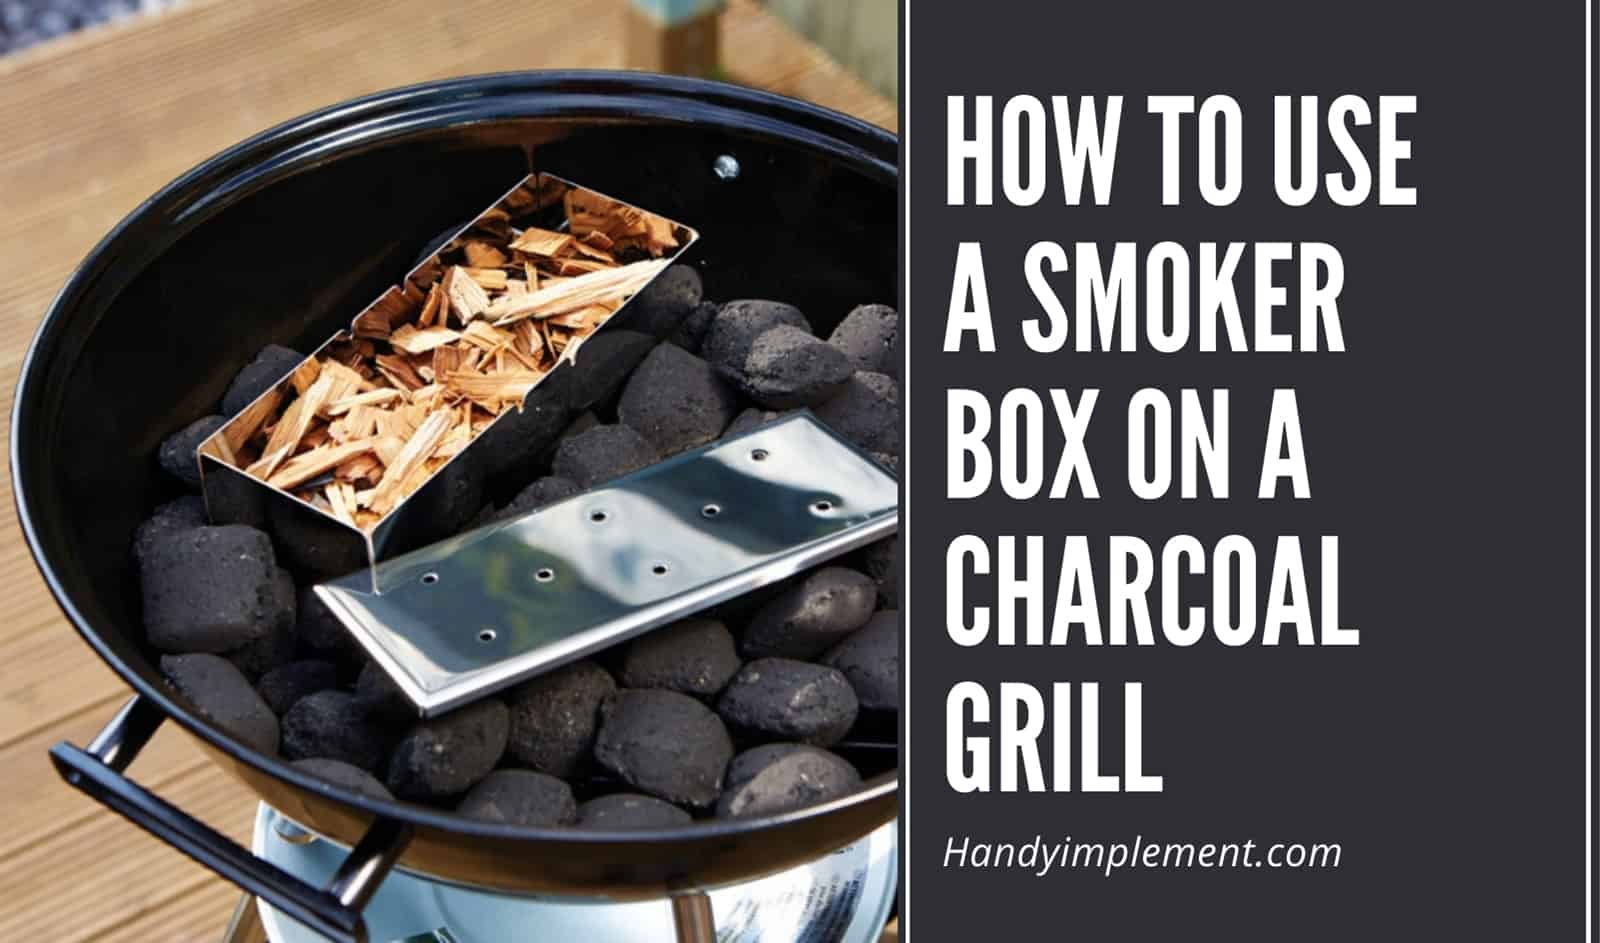 How to use a smoker box on a charcoal grill